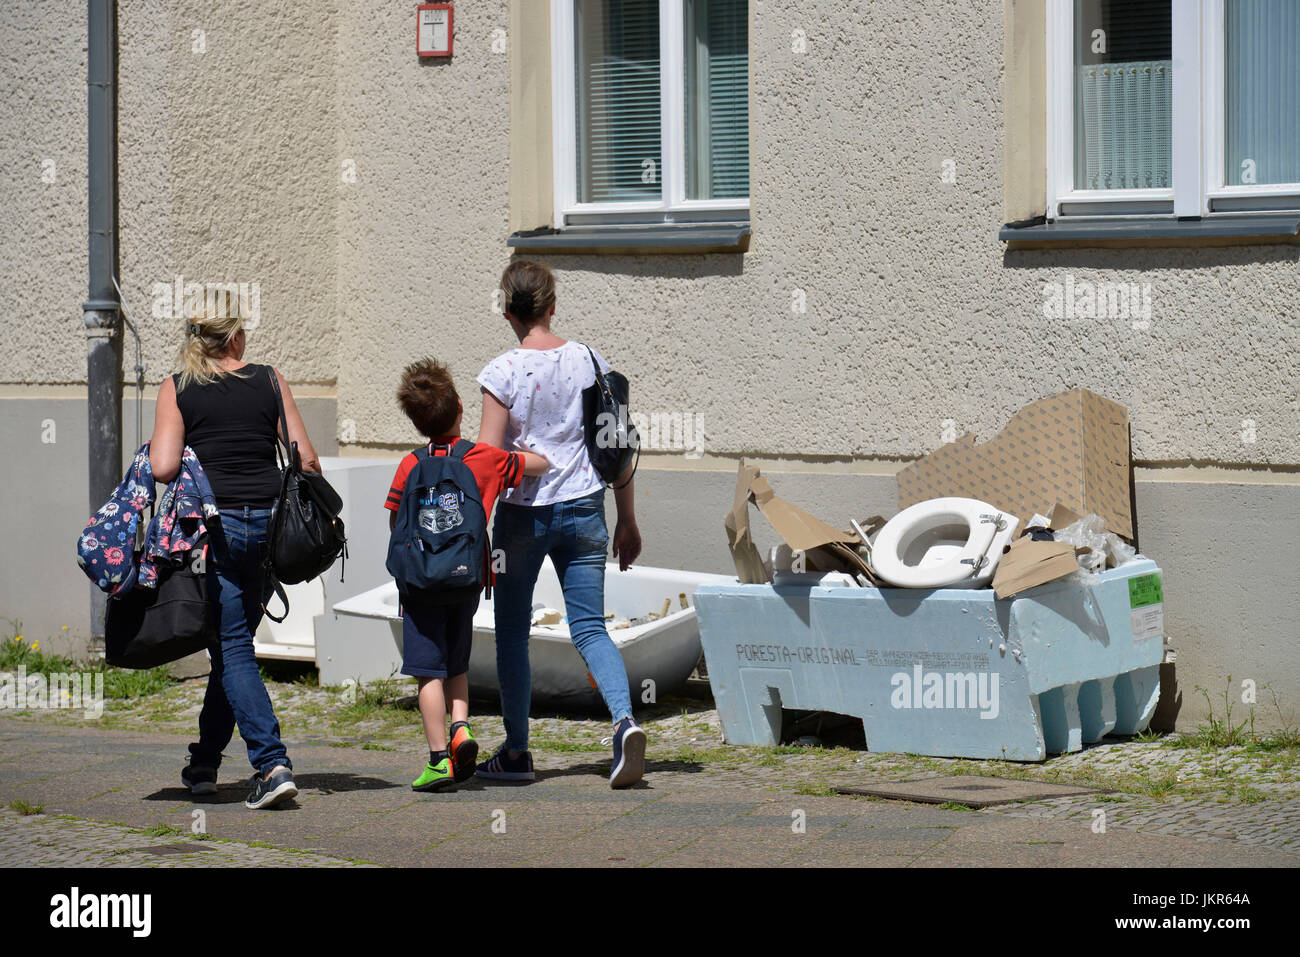 Bulky refuse, African street, Wedding, middle, Berlin, Germany, Sperrmuell, Afrikanische Strasse, Mitte, Deutschland - Stock Image